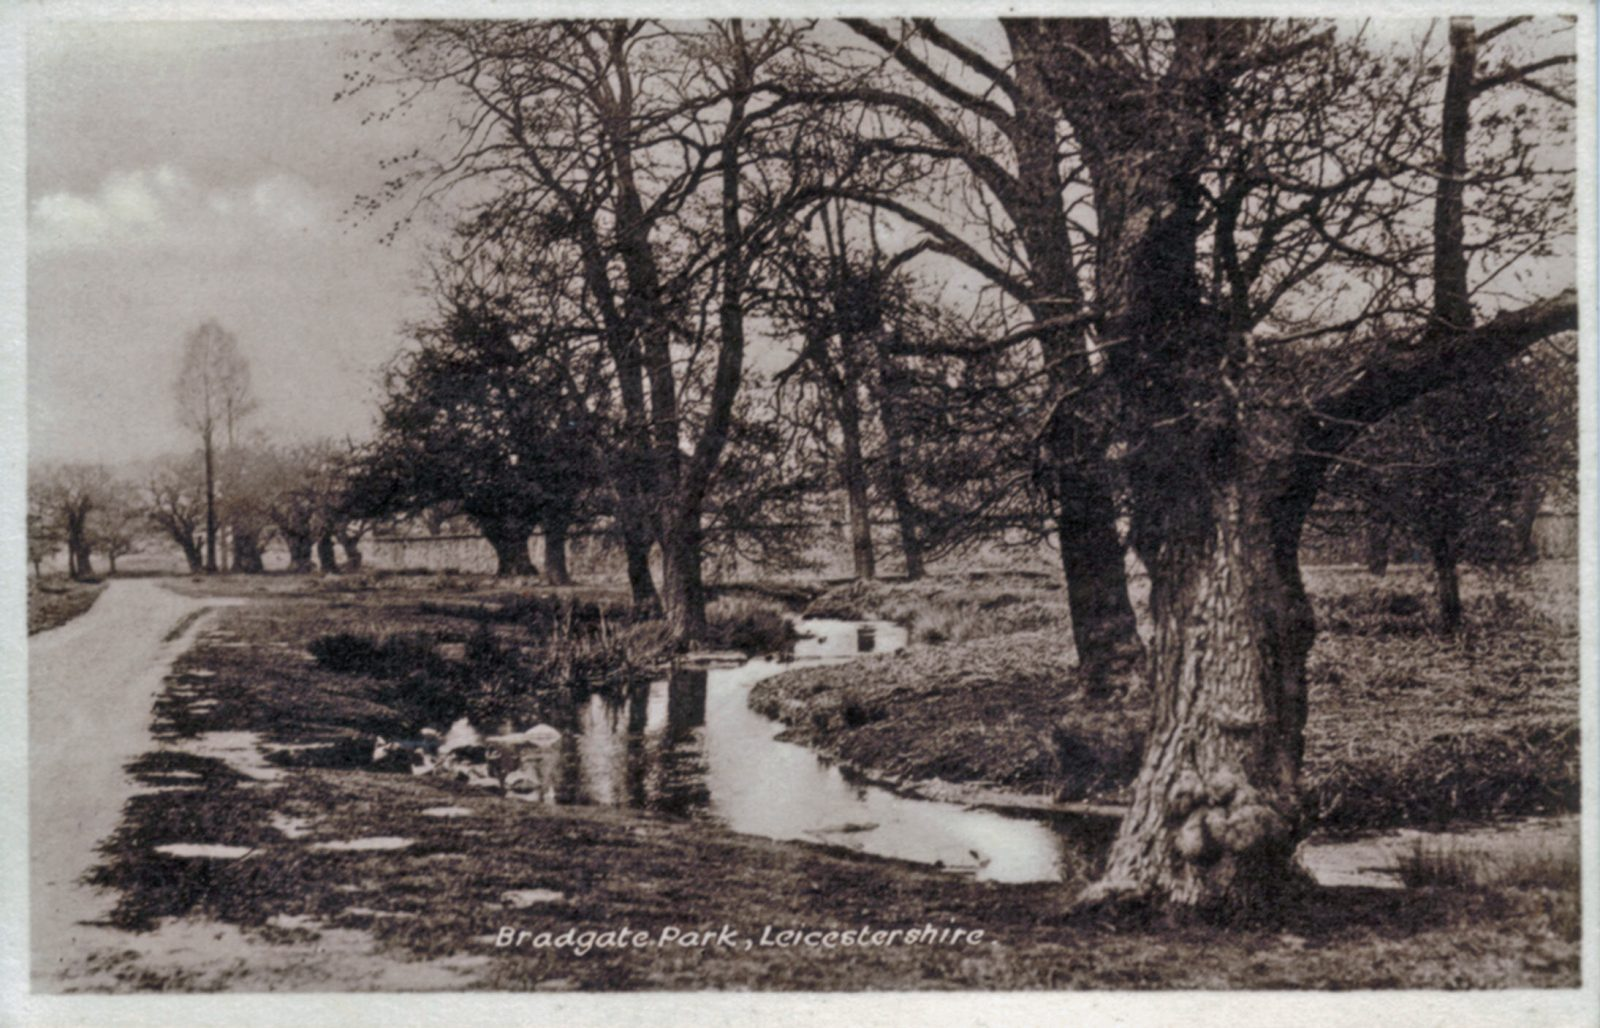 Bradgate Park, Leicester. Undated: The river and main path from Newtown Linford entrance. (File:1118)